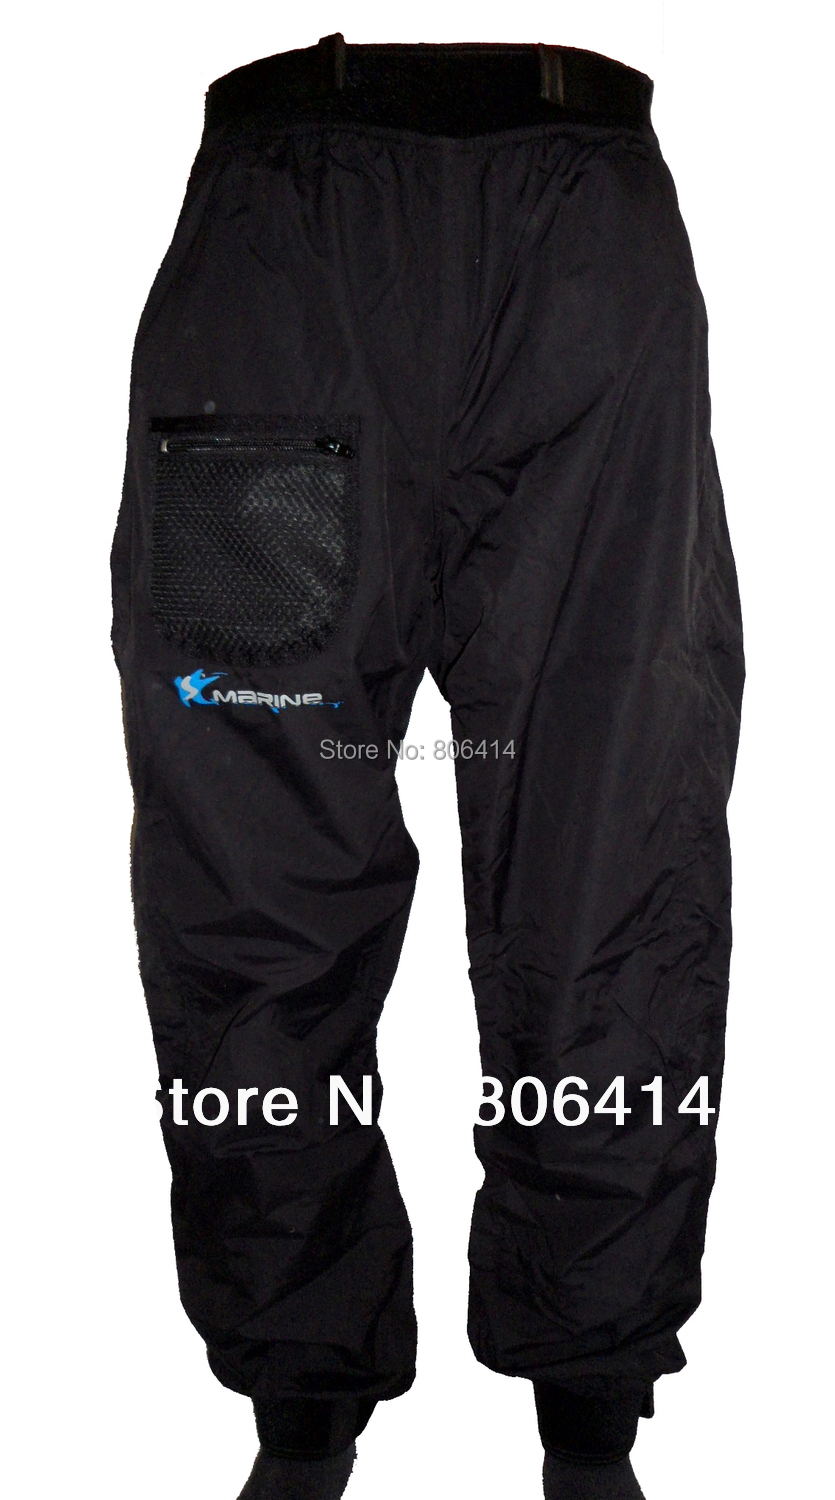 dry pants boating pants trousers,waterproof  pants spray pants for kayak,sailing,caneoing,fishing,paddling,rafting,whitewater